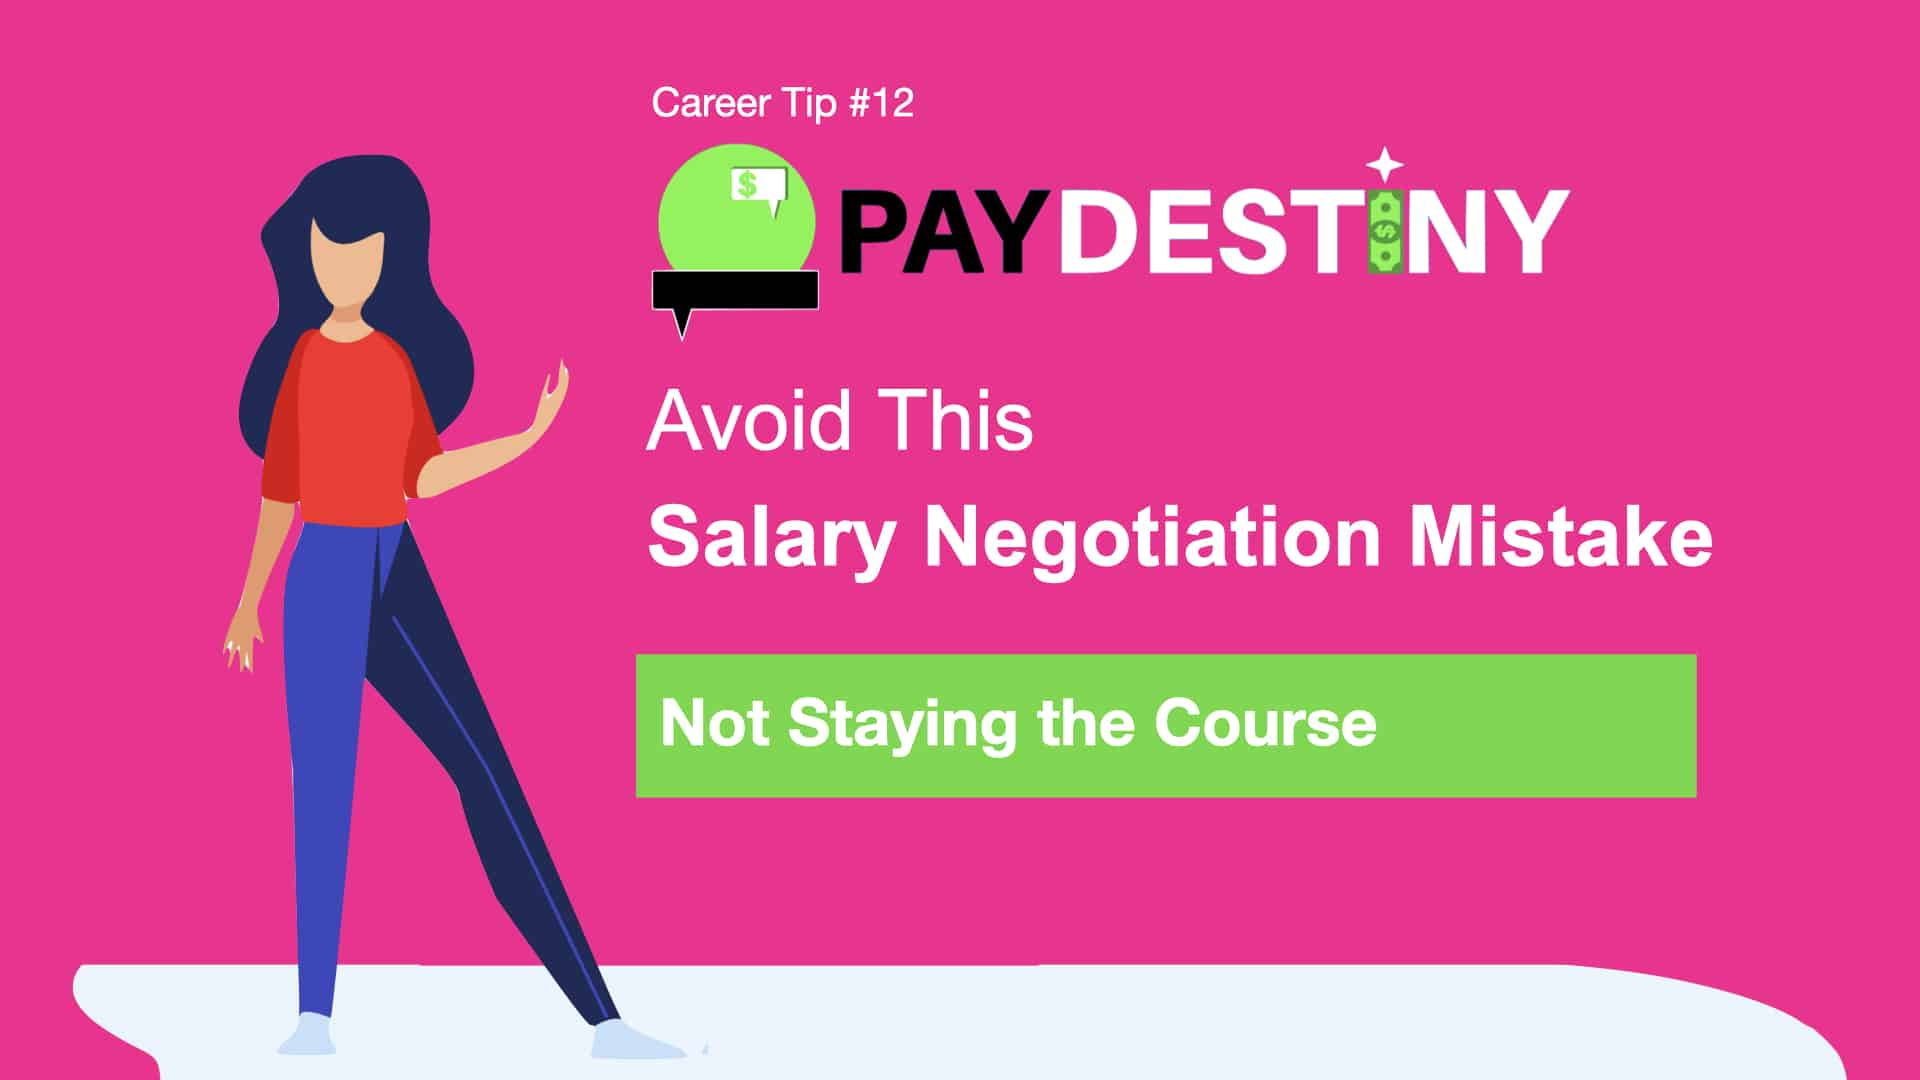 Salary Negotiation Mistake (Not Staying the Course)